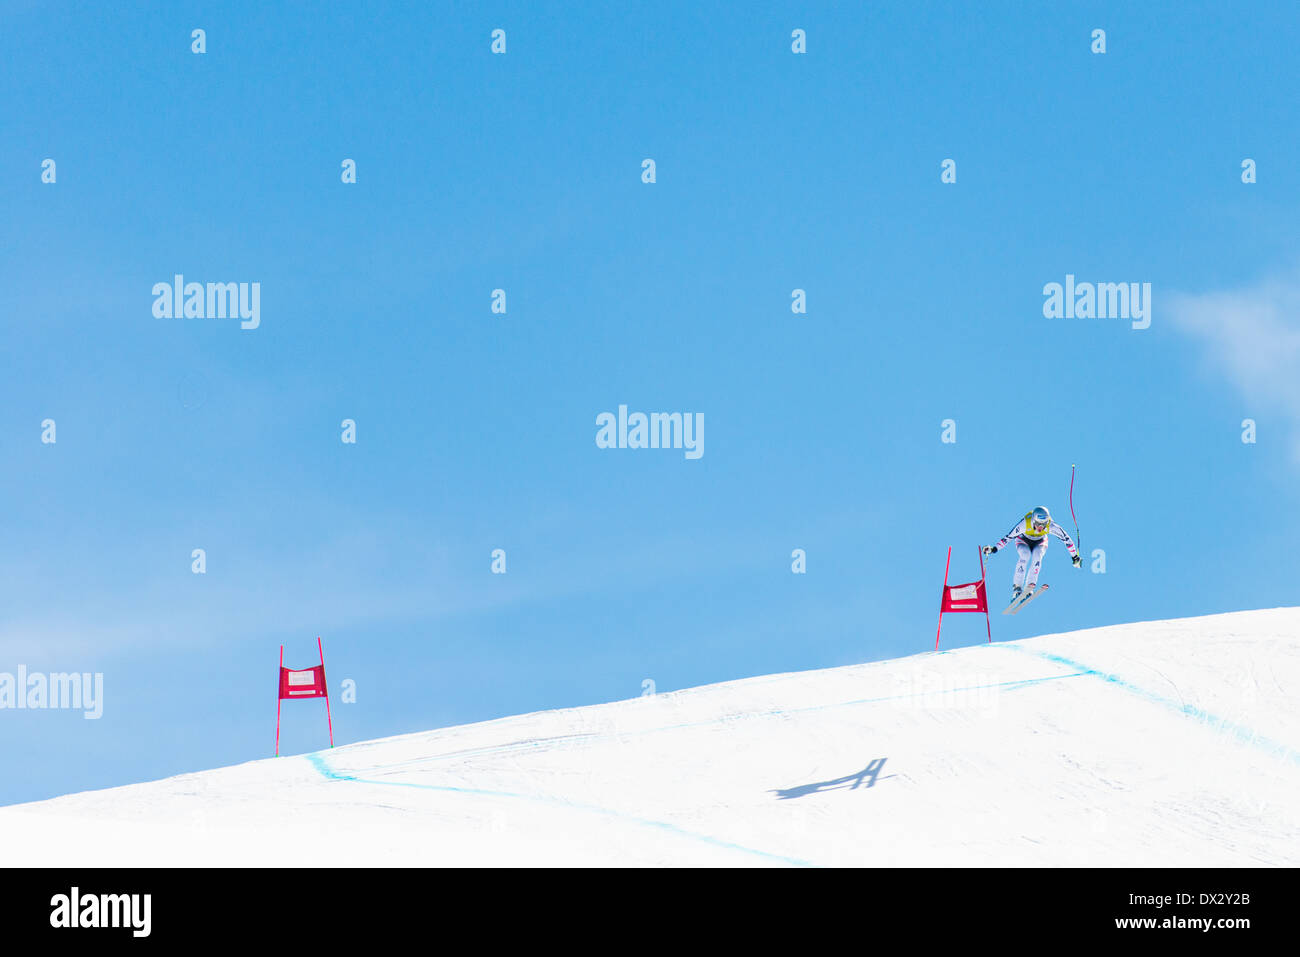 Europa Cup Downhill Ski Competition in Soldeu, Andorra - Stock Image